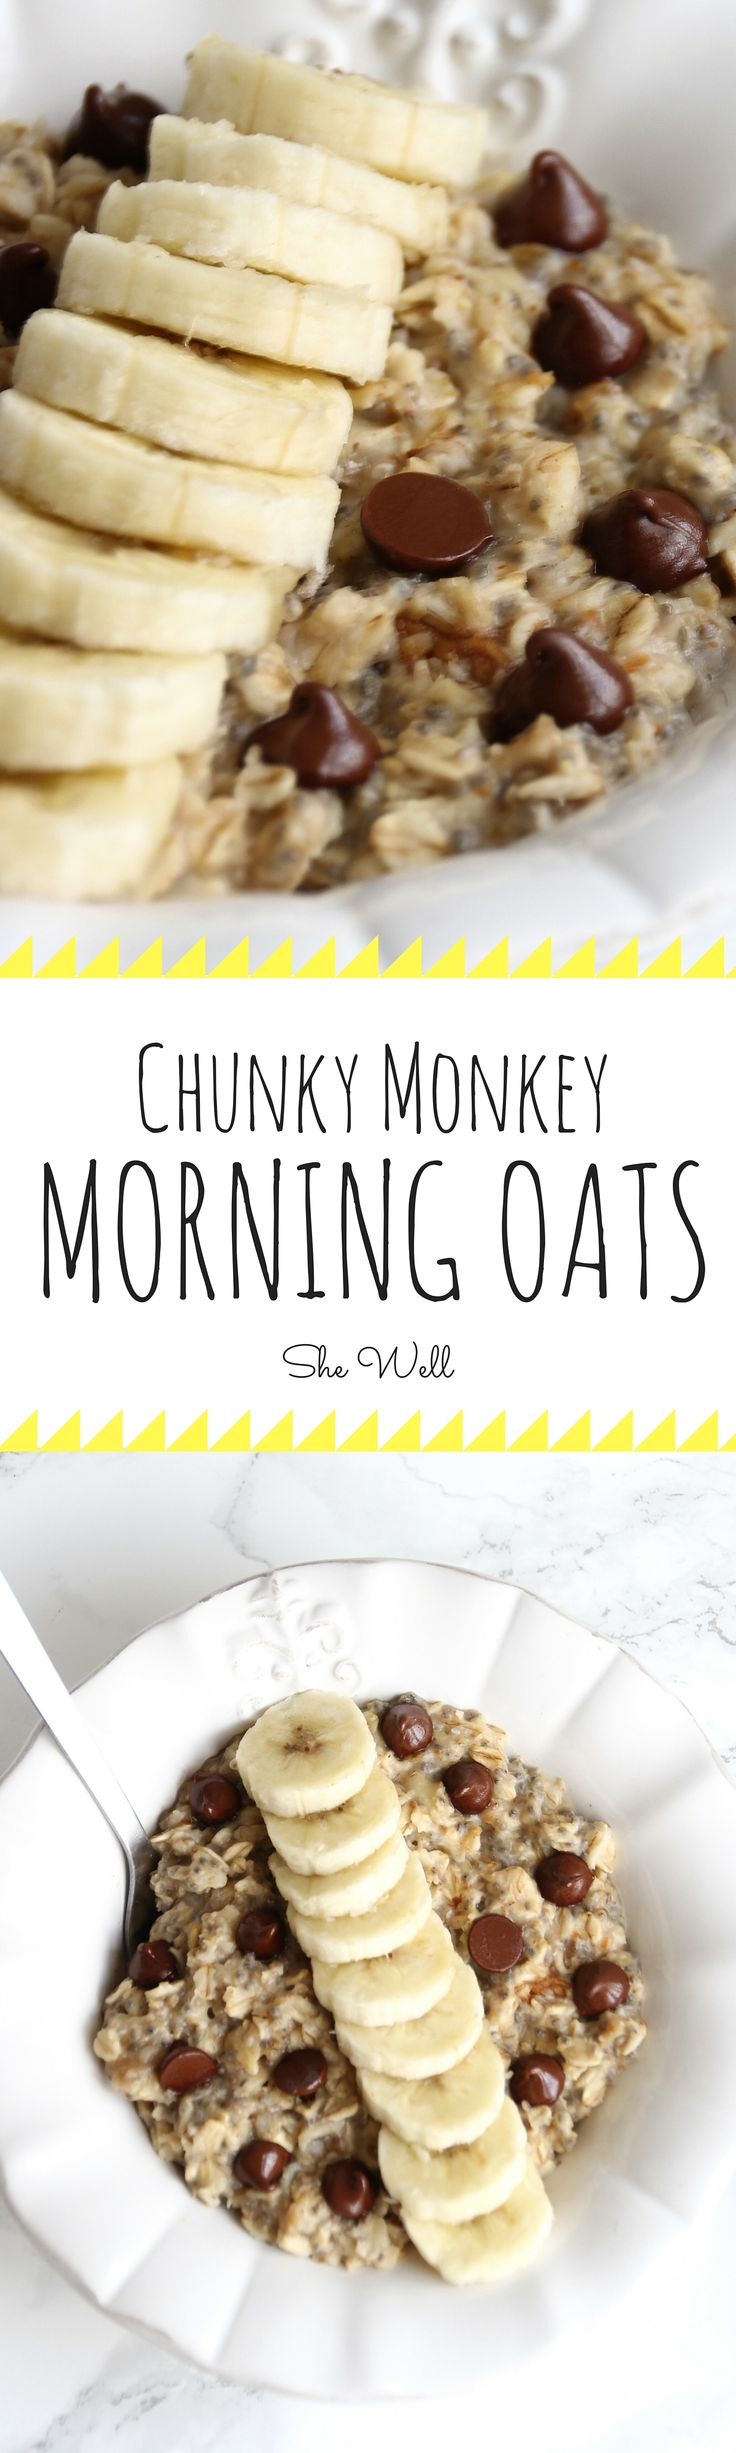 Easy banana, chocolate & peanut butter Chunky Monkey Morning Oats! The perfect breakfast for people who are vegan, vegetarian,